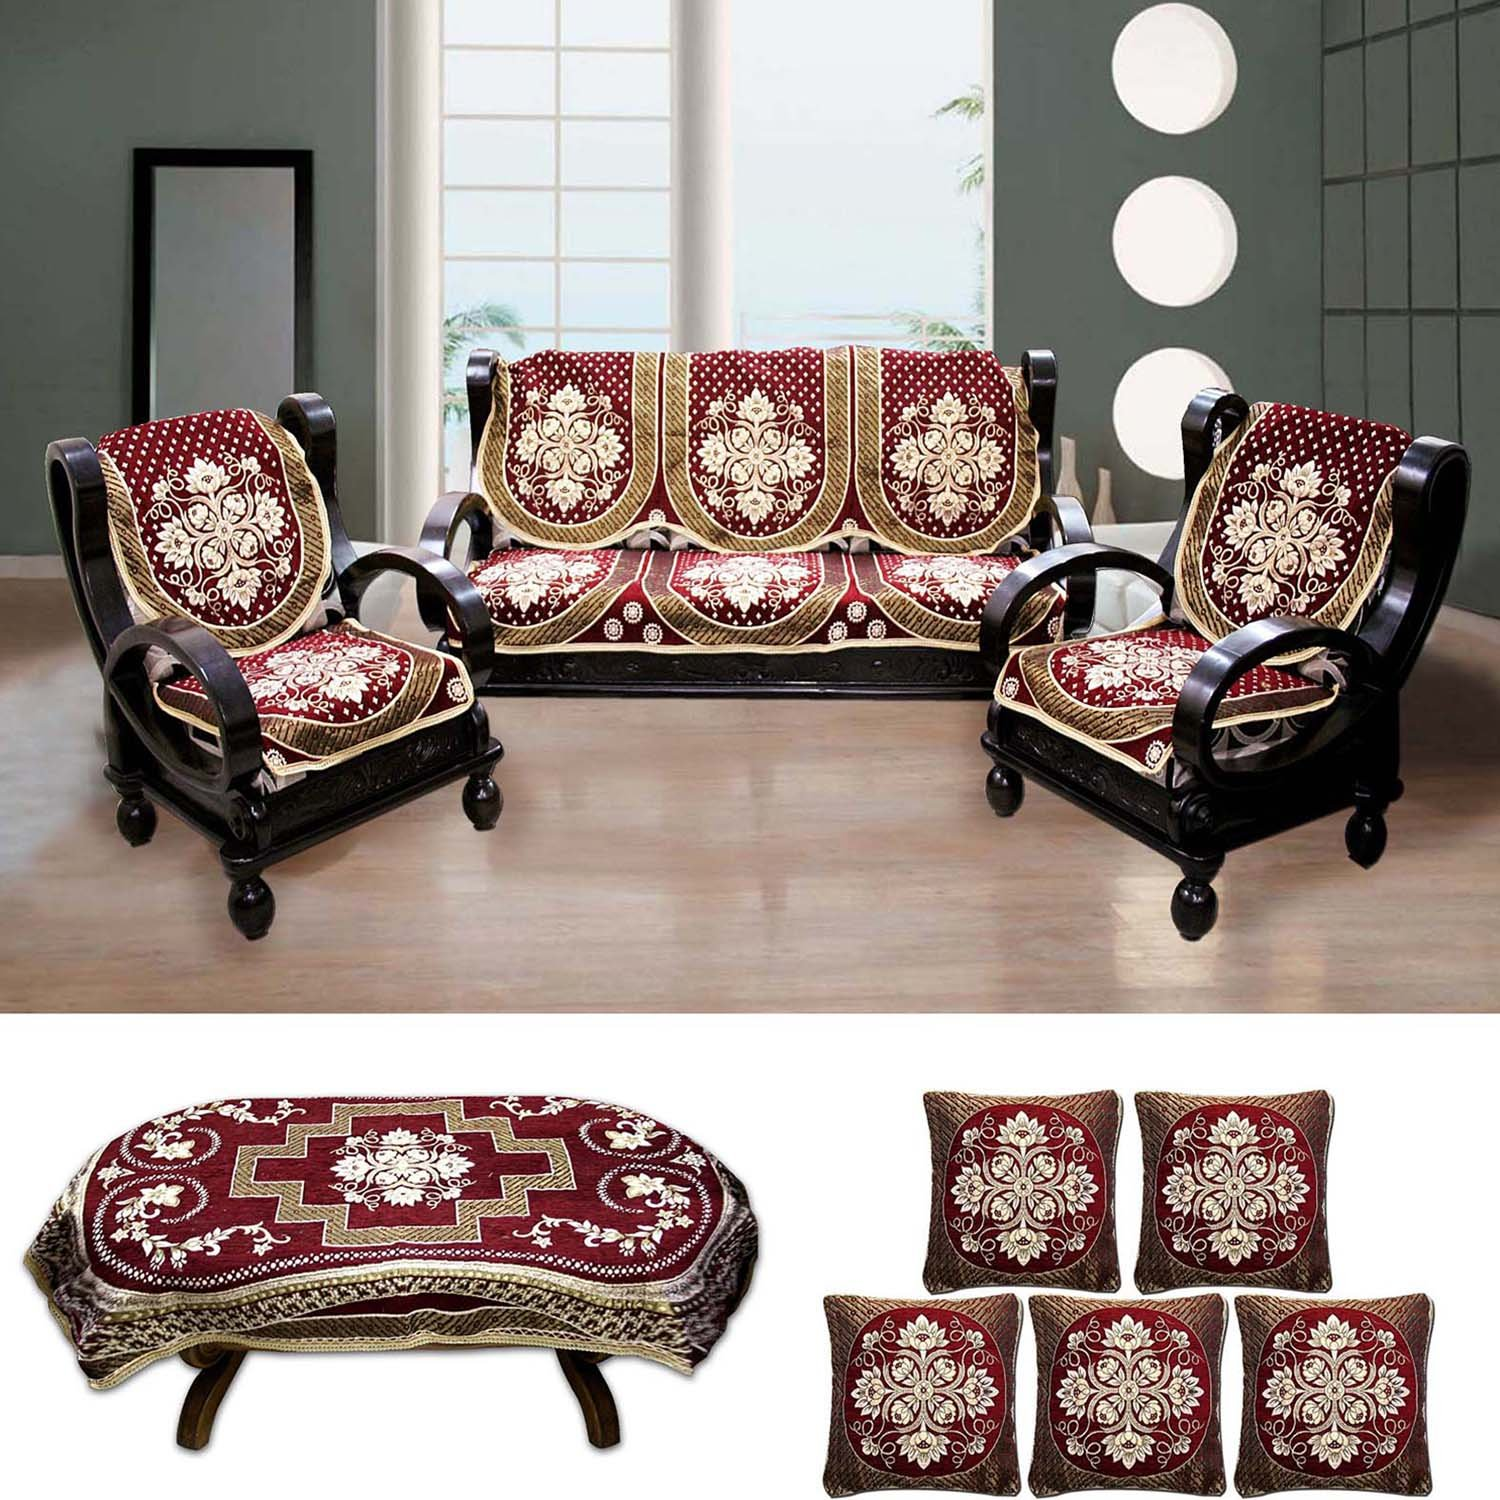 Buy FURNISHING KINGDOM Floral Velvet Sofa Cover Table Cover and